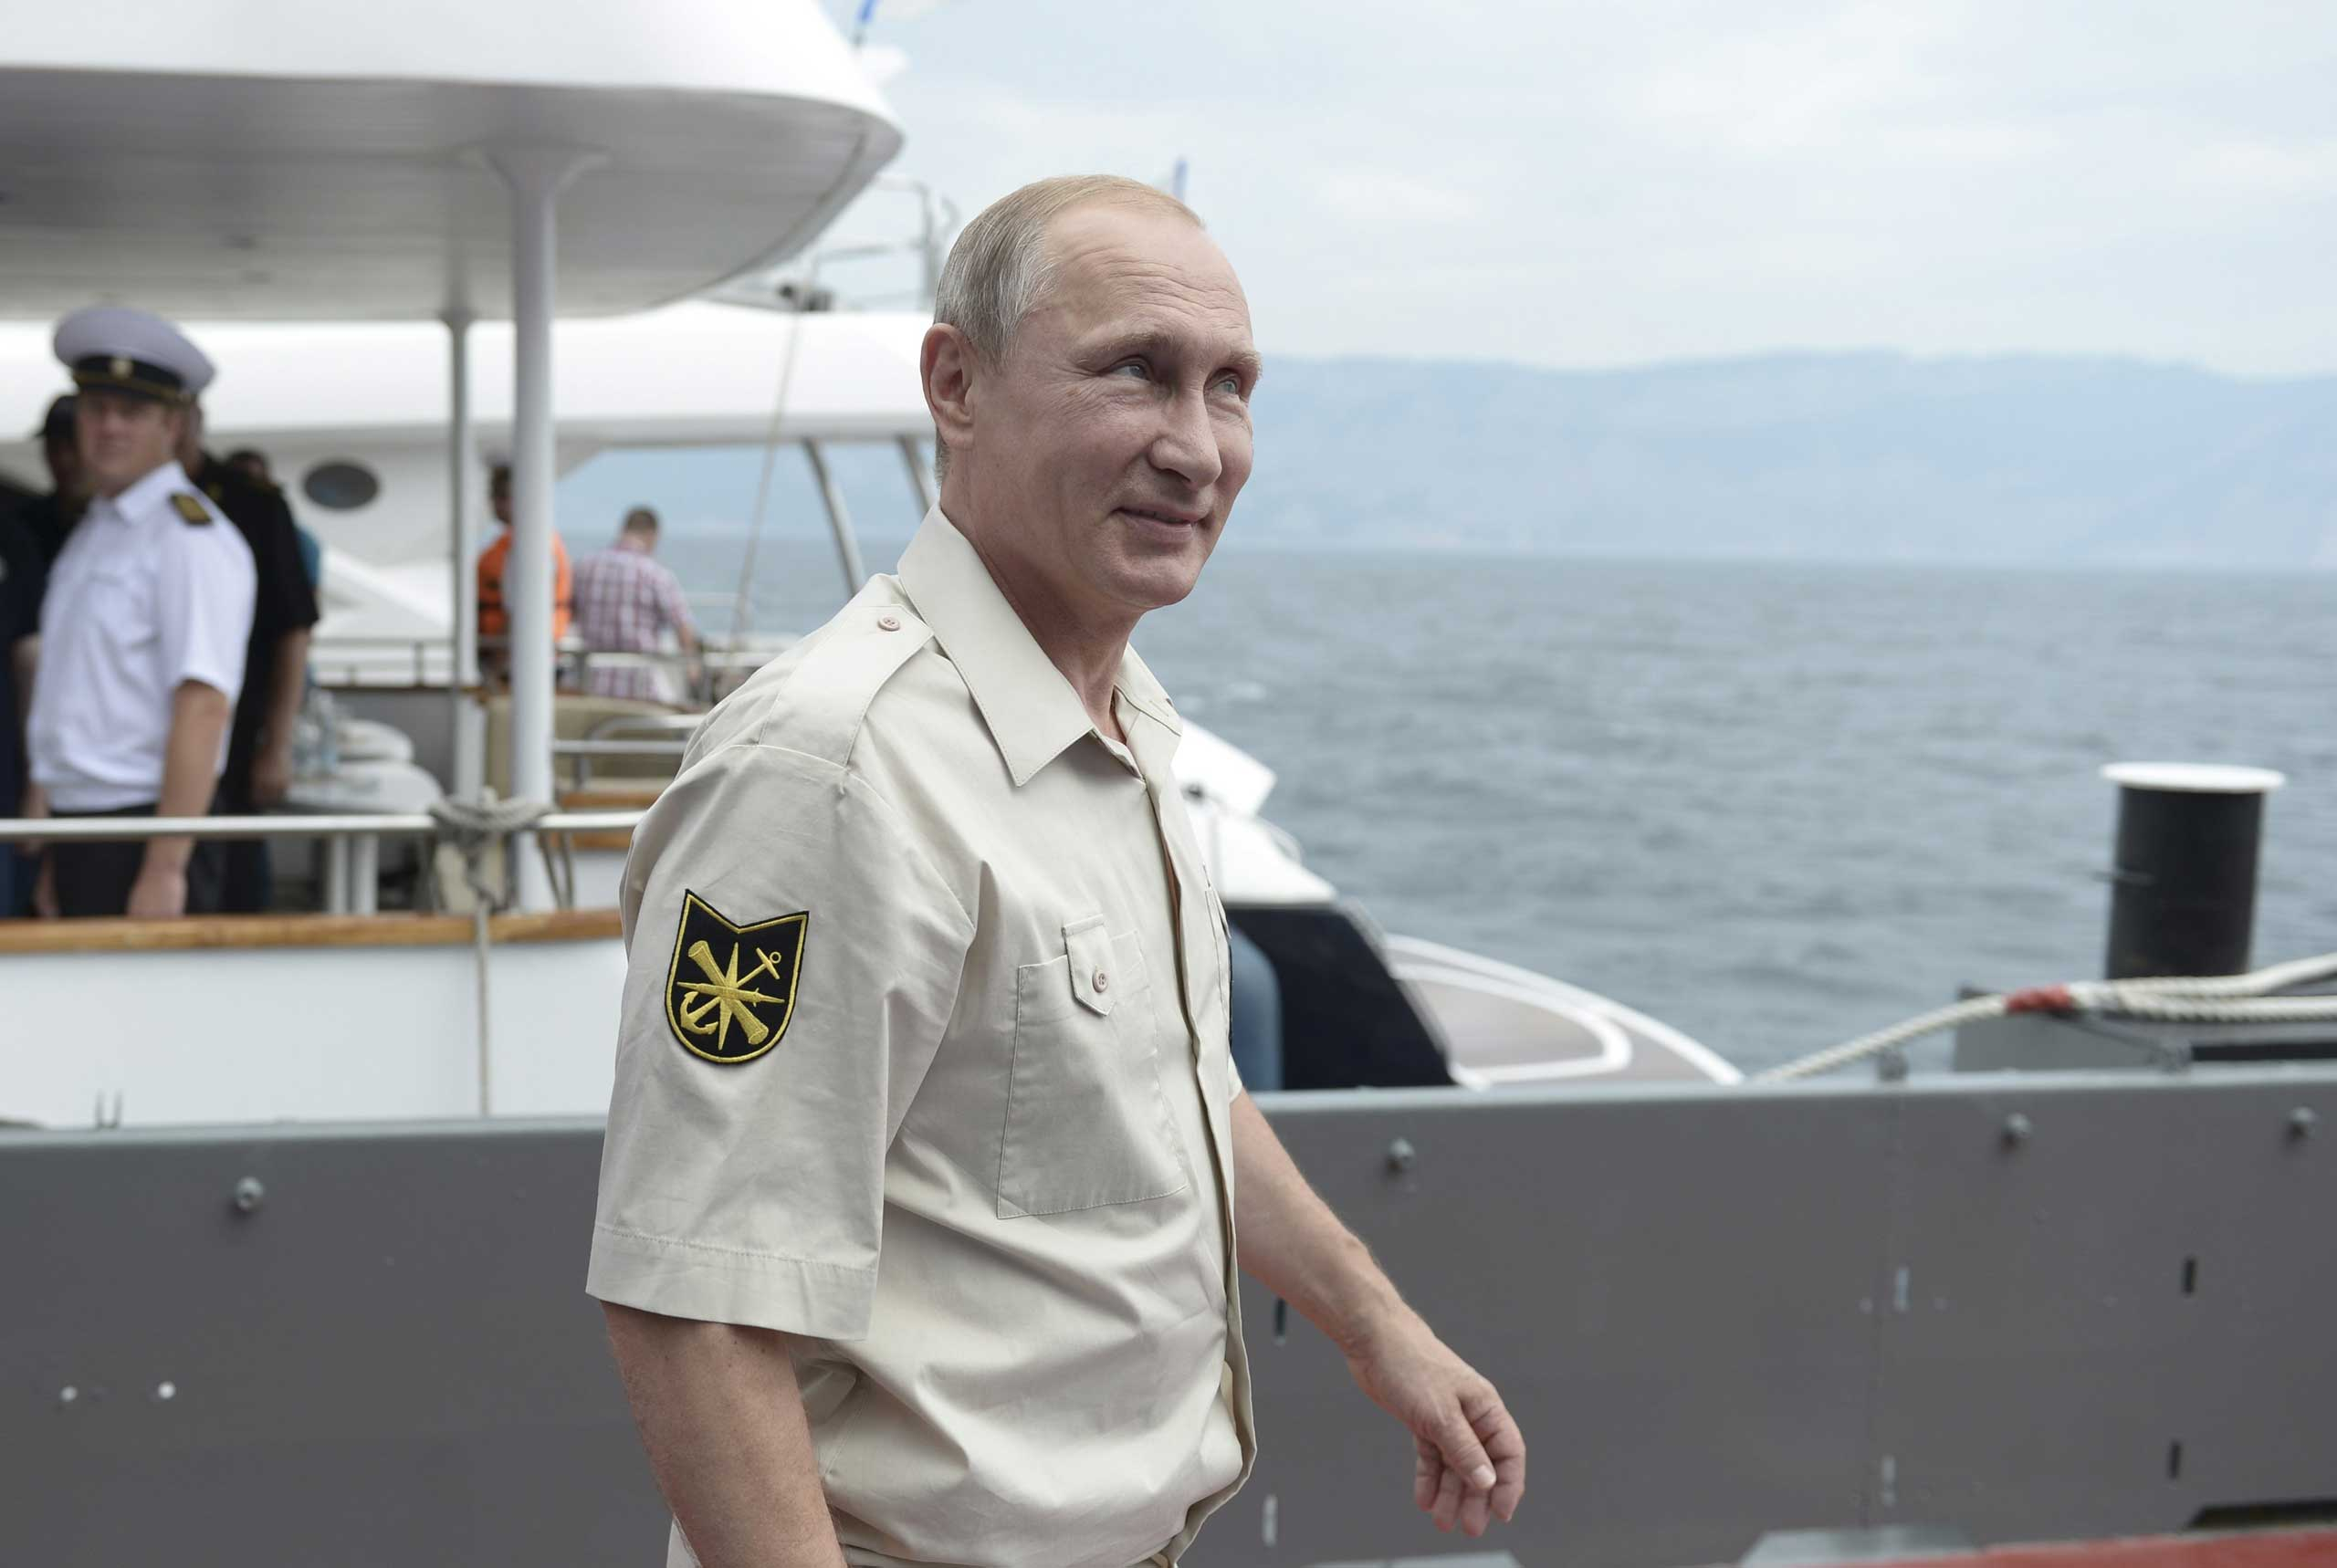 President Putin walks before submerging into the waters of the Black Sea inside a research bathyscaphe as part of an expedition near Sevastopol, on Aug. 18, 2015.